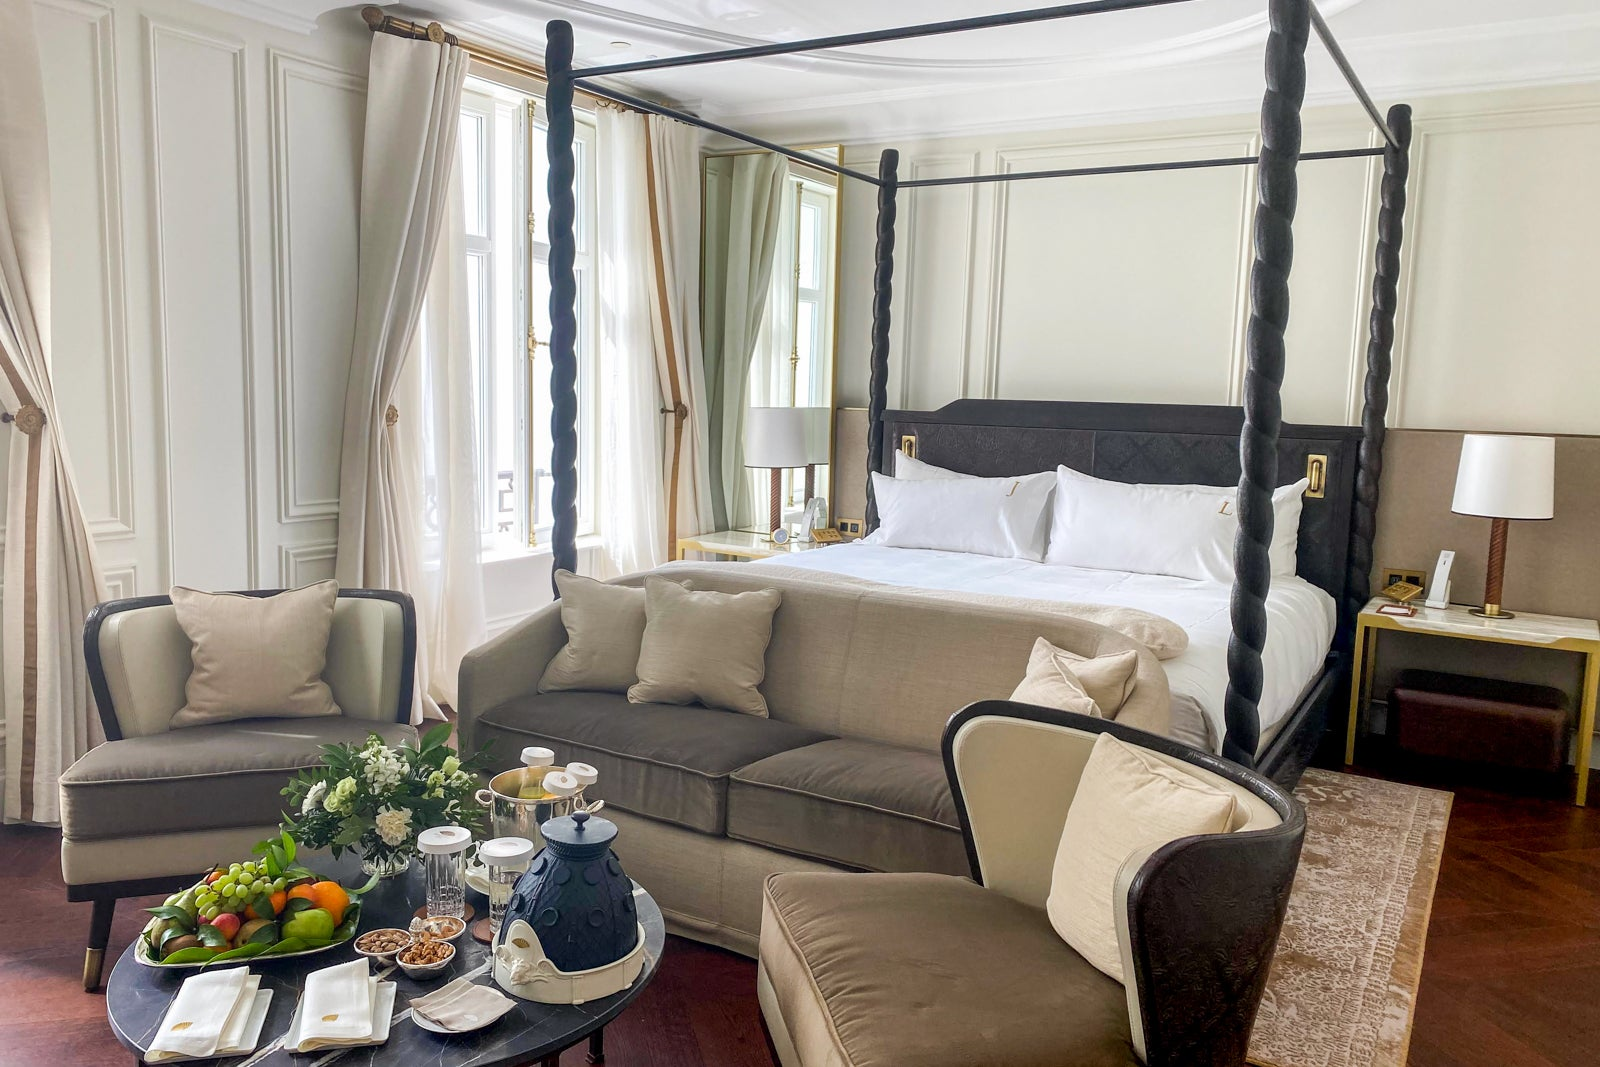 What it's like to stay at Madrid's most luxurious new hotel - The Points Guy UK